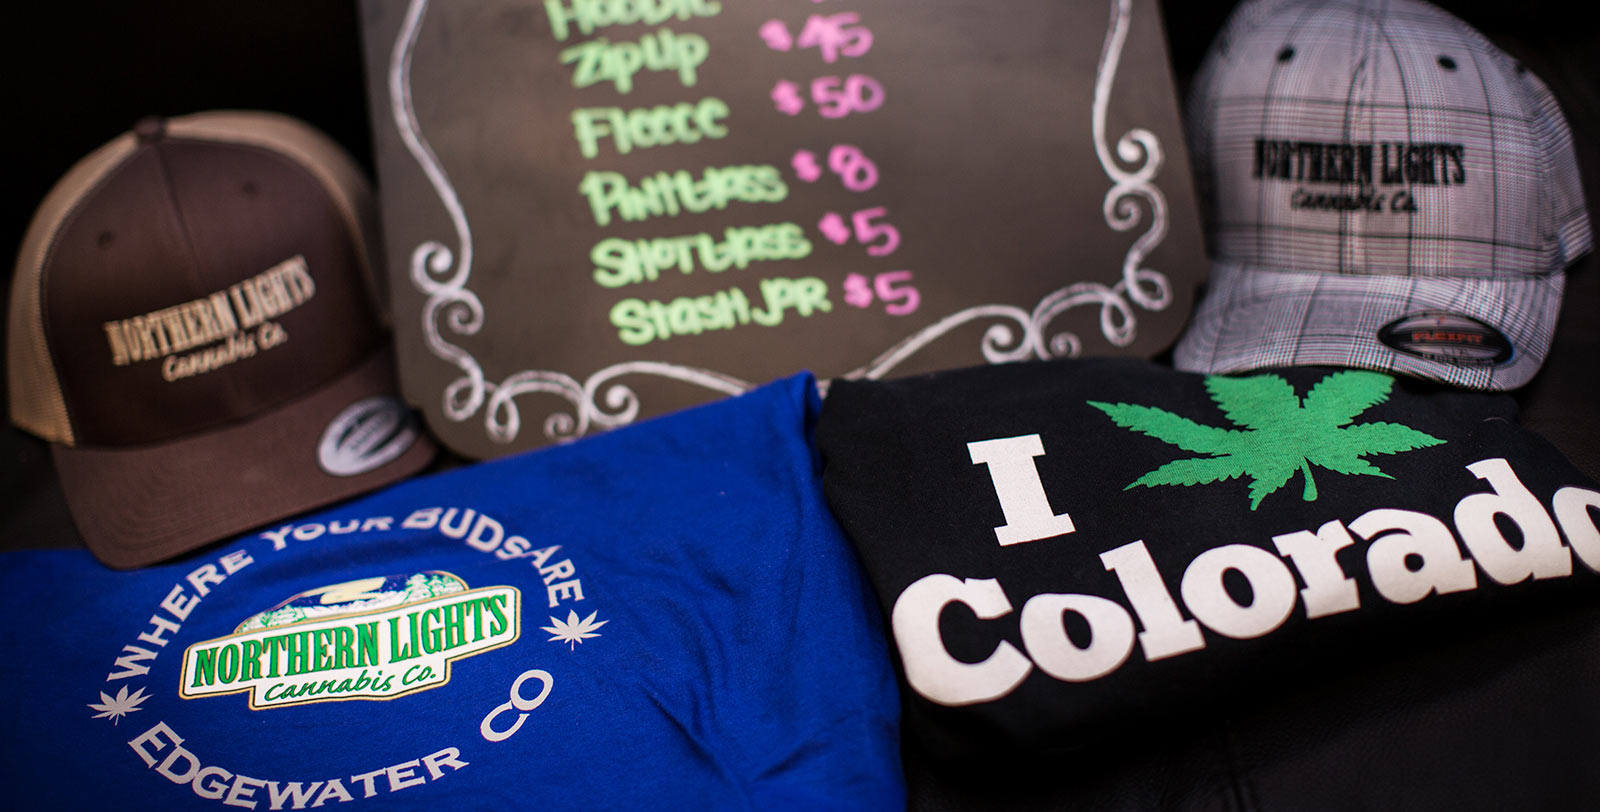 Northern Lights Cannabis - Swag